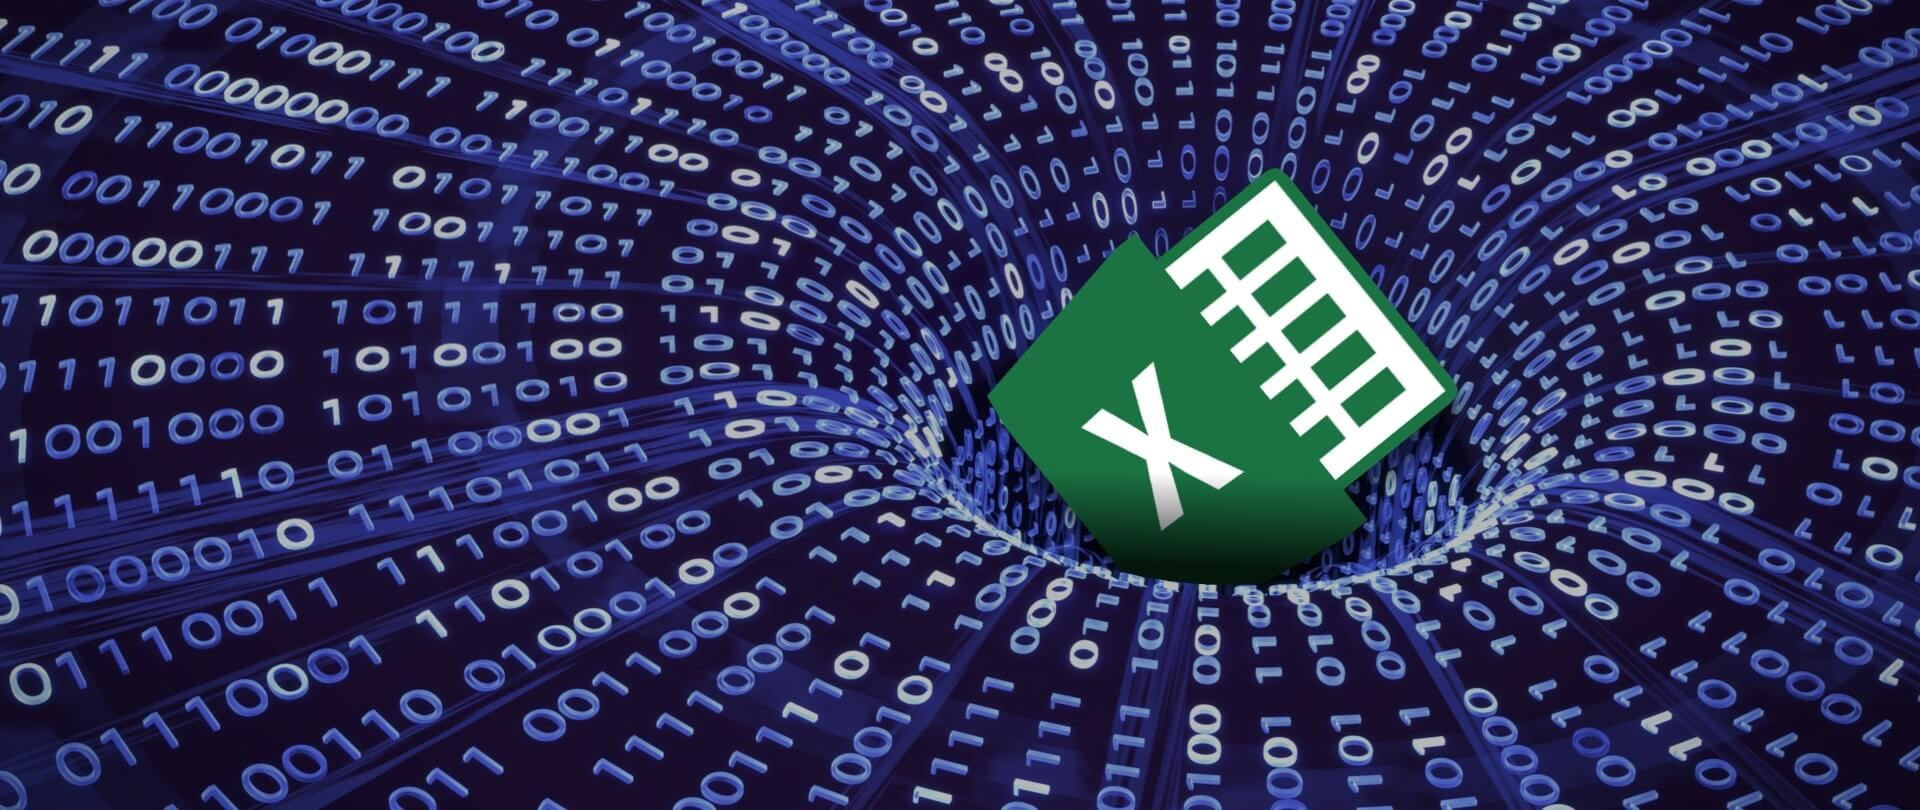 The 'Excel scandal'